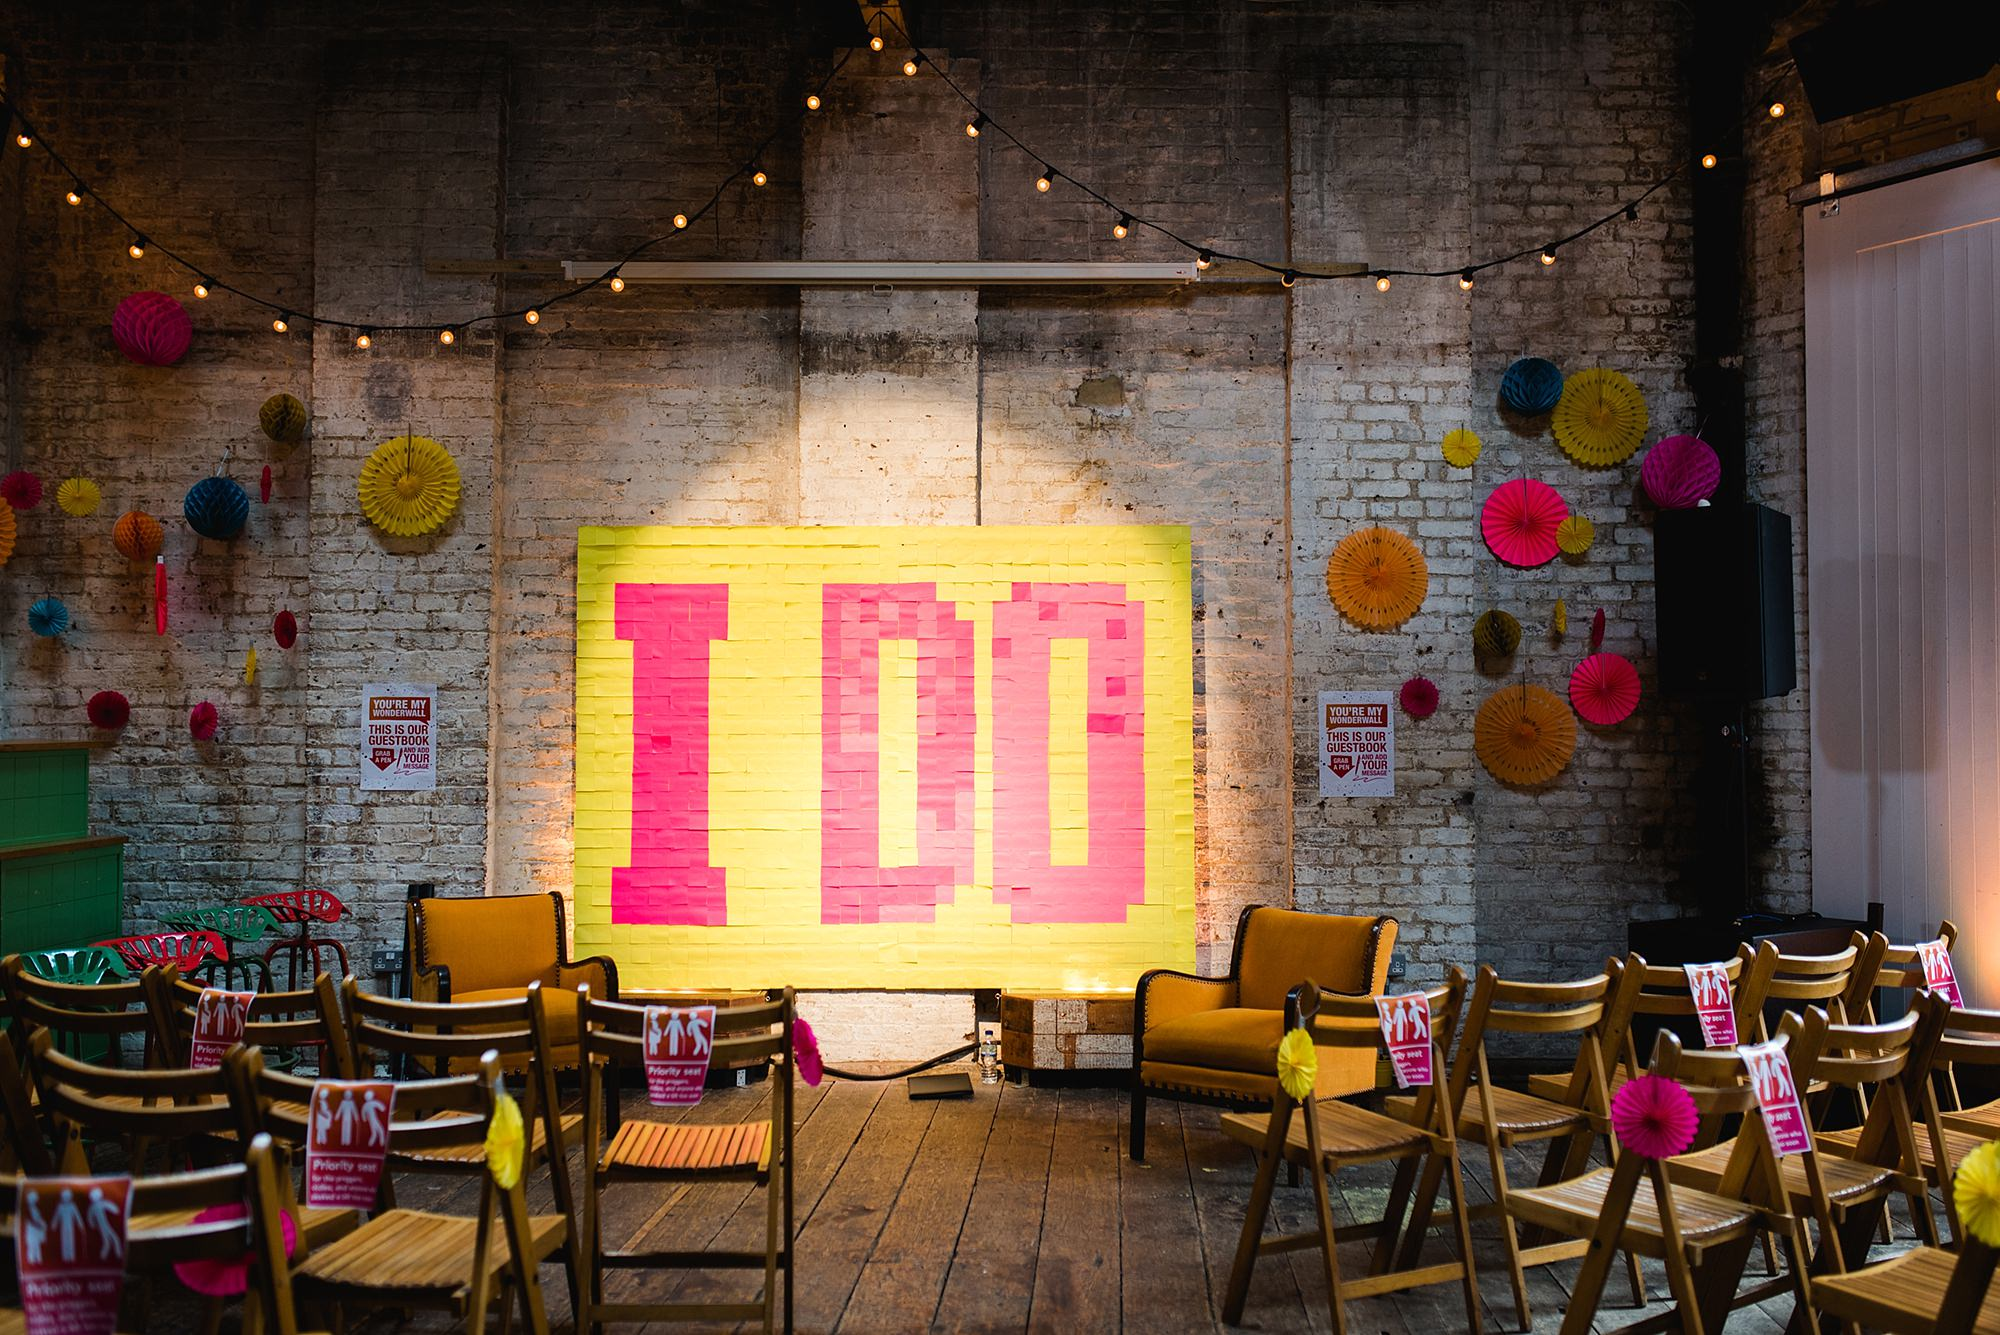 Fun London Wedding I Do sign made out of post it notes at brixton east